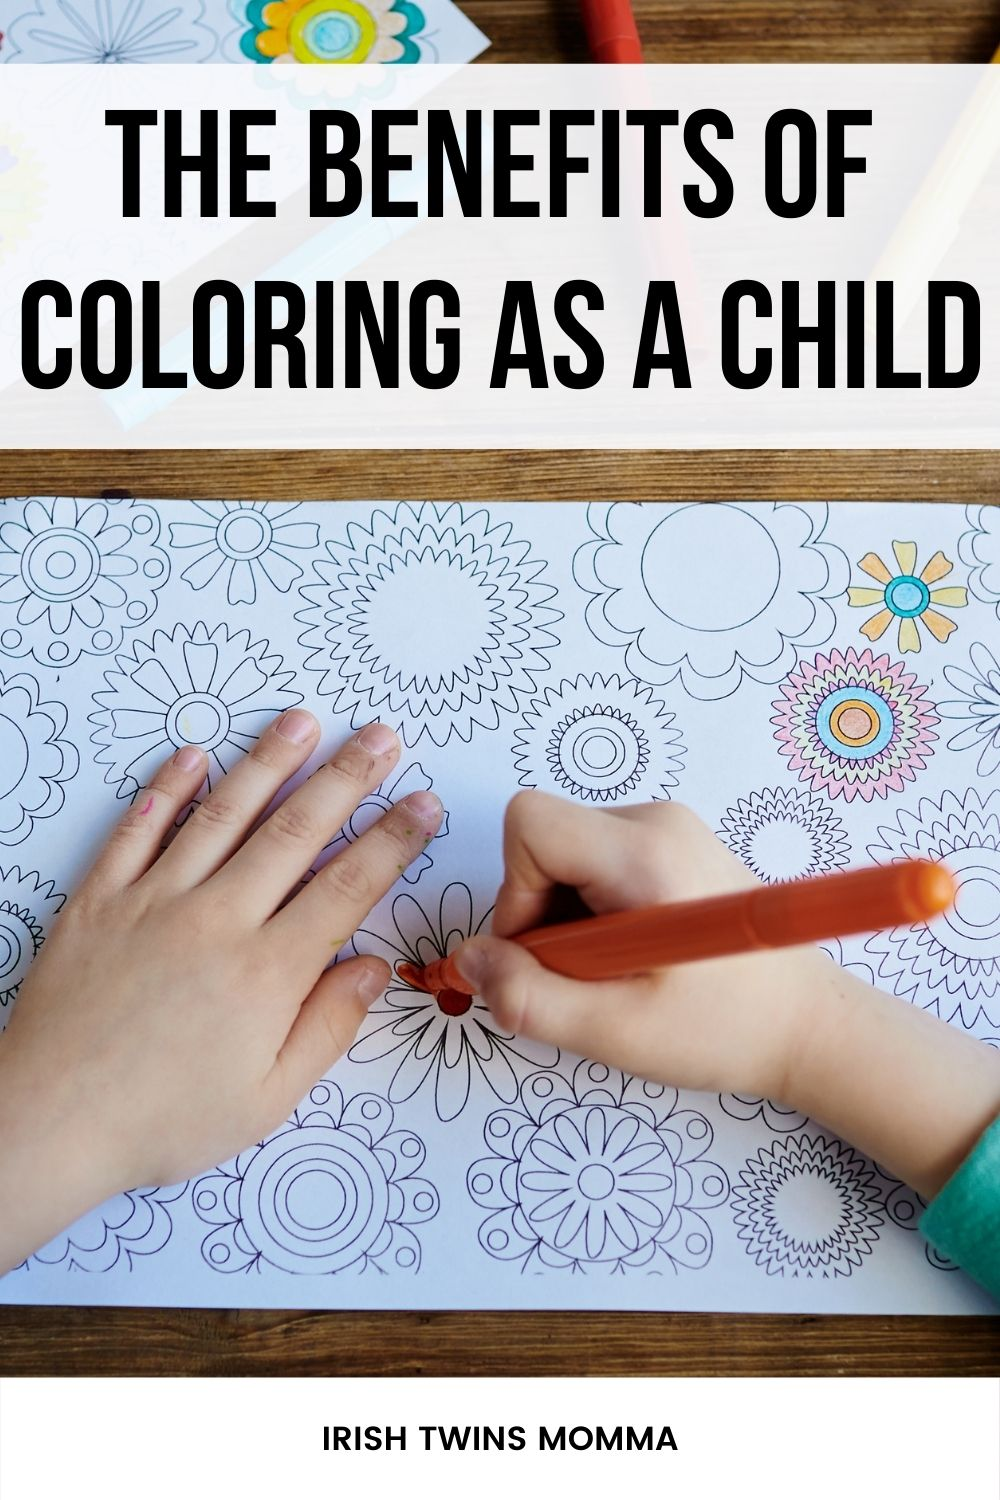 Coloring has always been an important part of my boy's childhood, and I'm grateful for any products that help expand their motor skills and creativity. These products from Eat Sleep Doodle ensure that coloring will be fun for kids AND educational at the same time. via @irishtwinsmom11